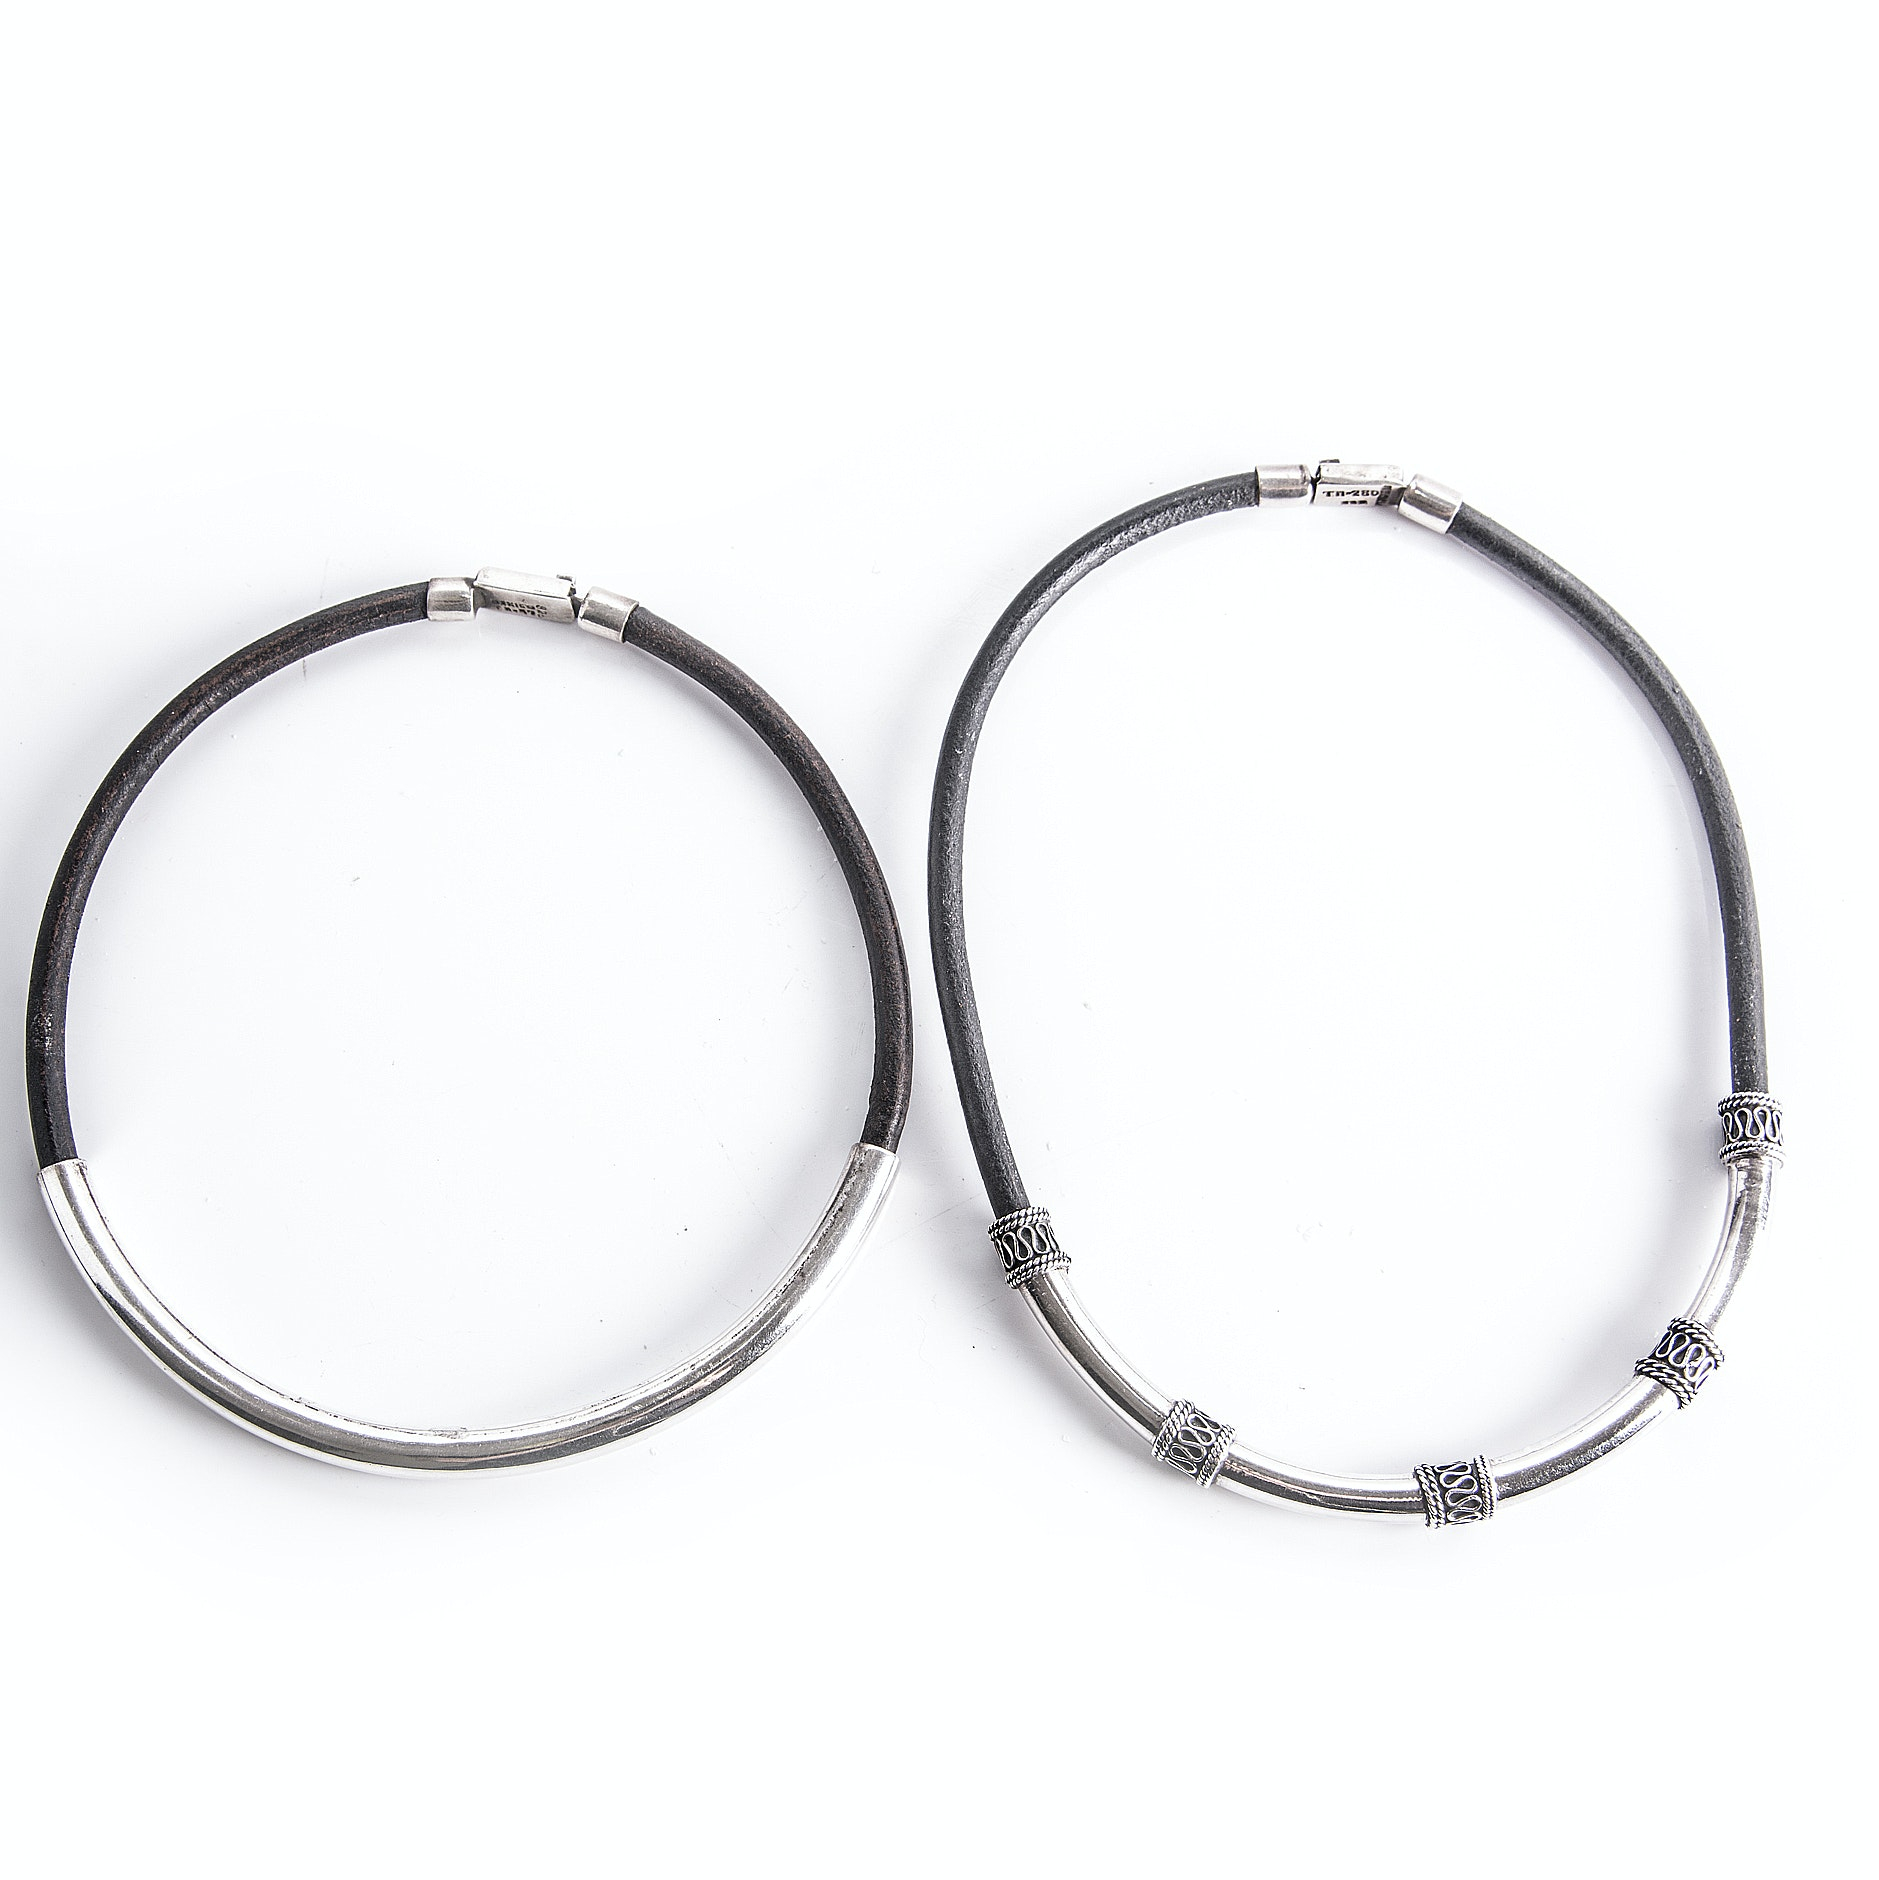 Sterling Silver and Cord Choker Necklaces